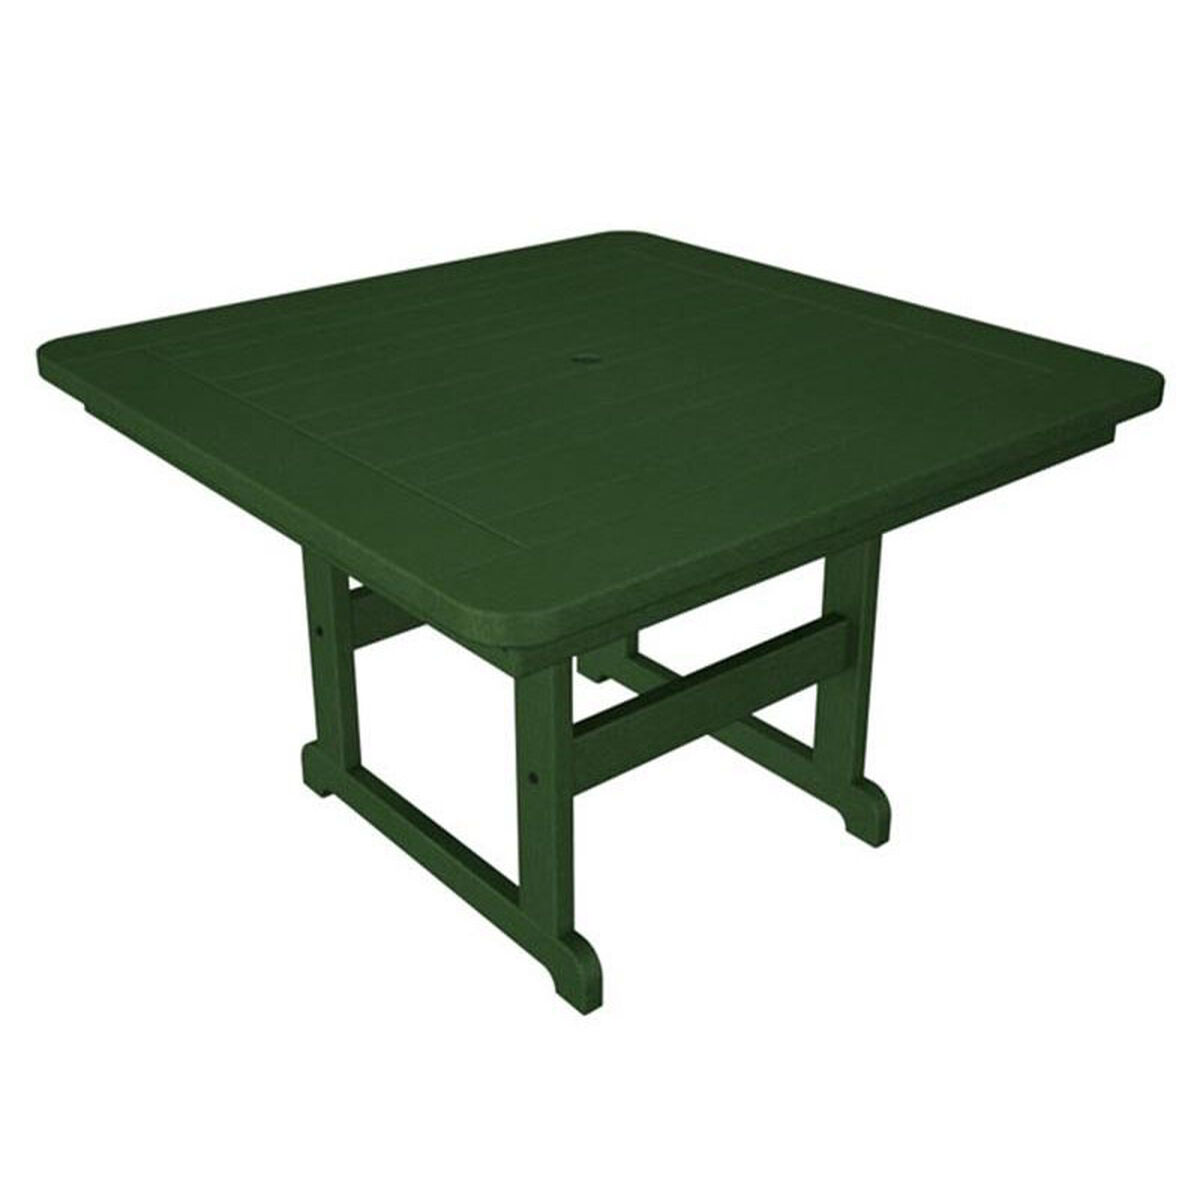 Our polywood commercial collection park square table green is on sale